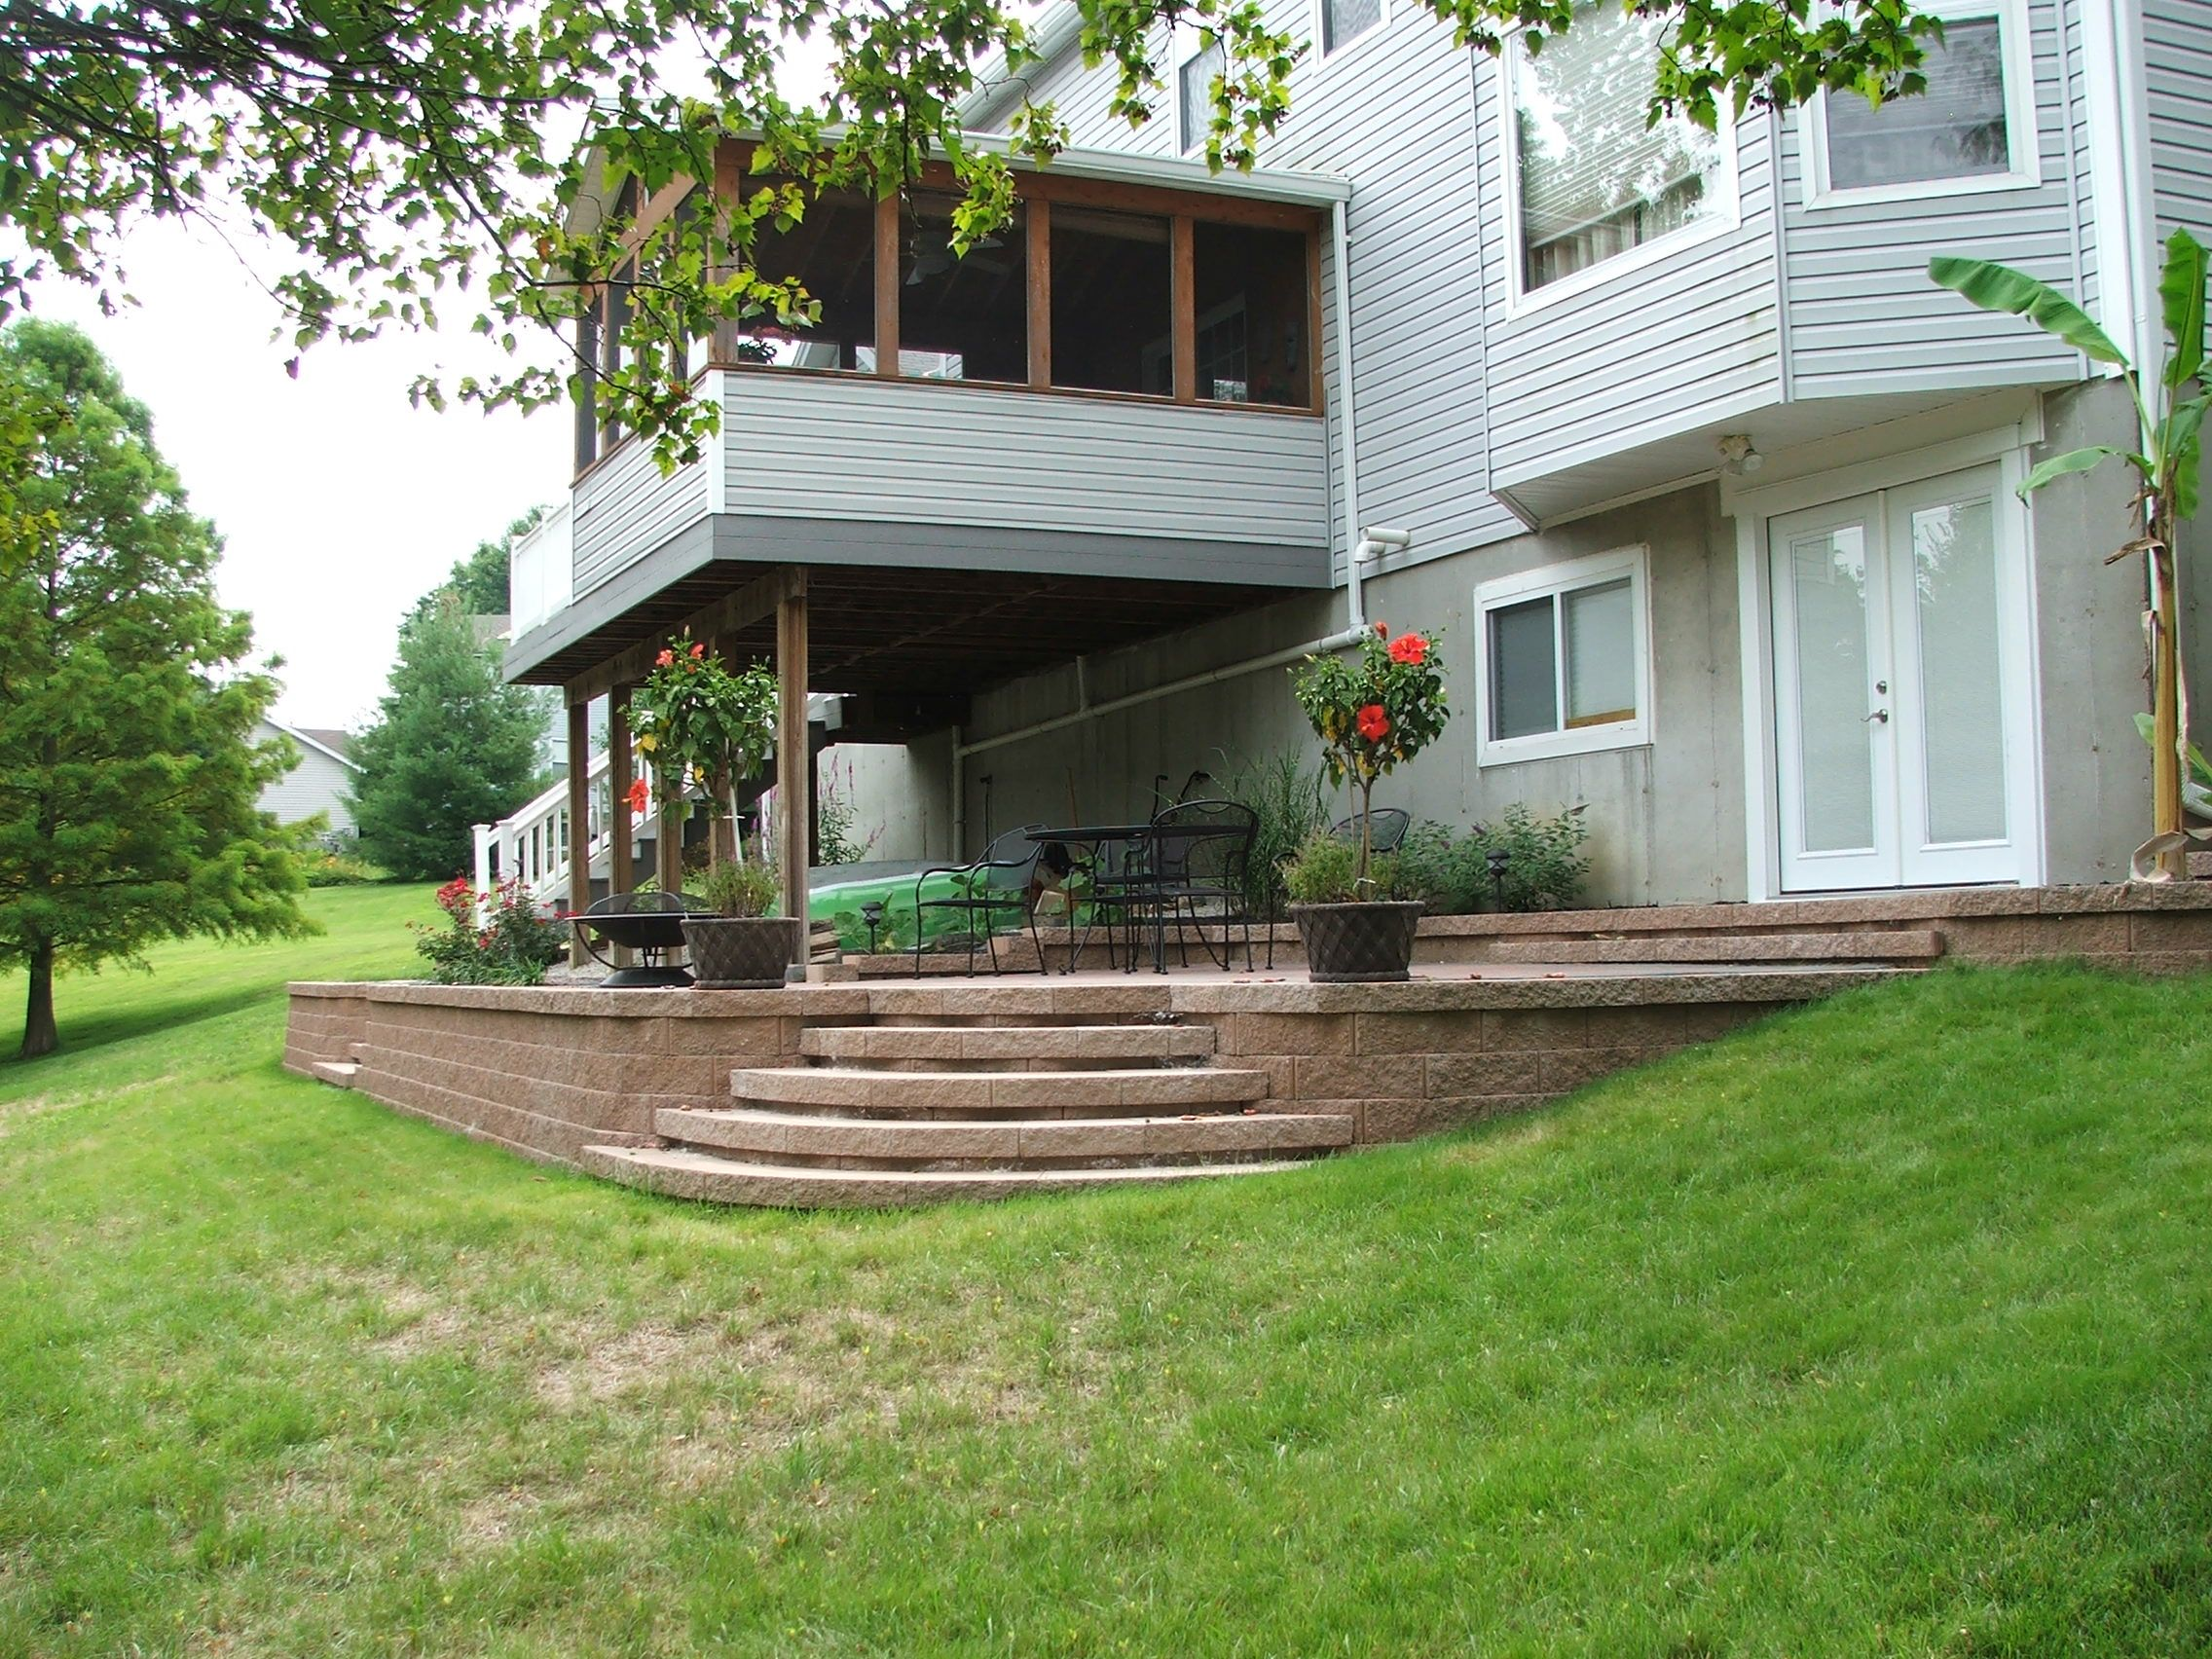 patio on a hill - Google Search | Patio ideas 2014 ...